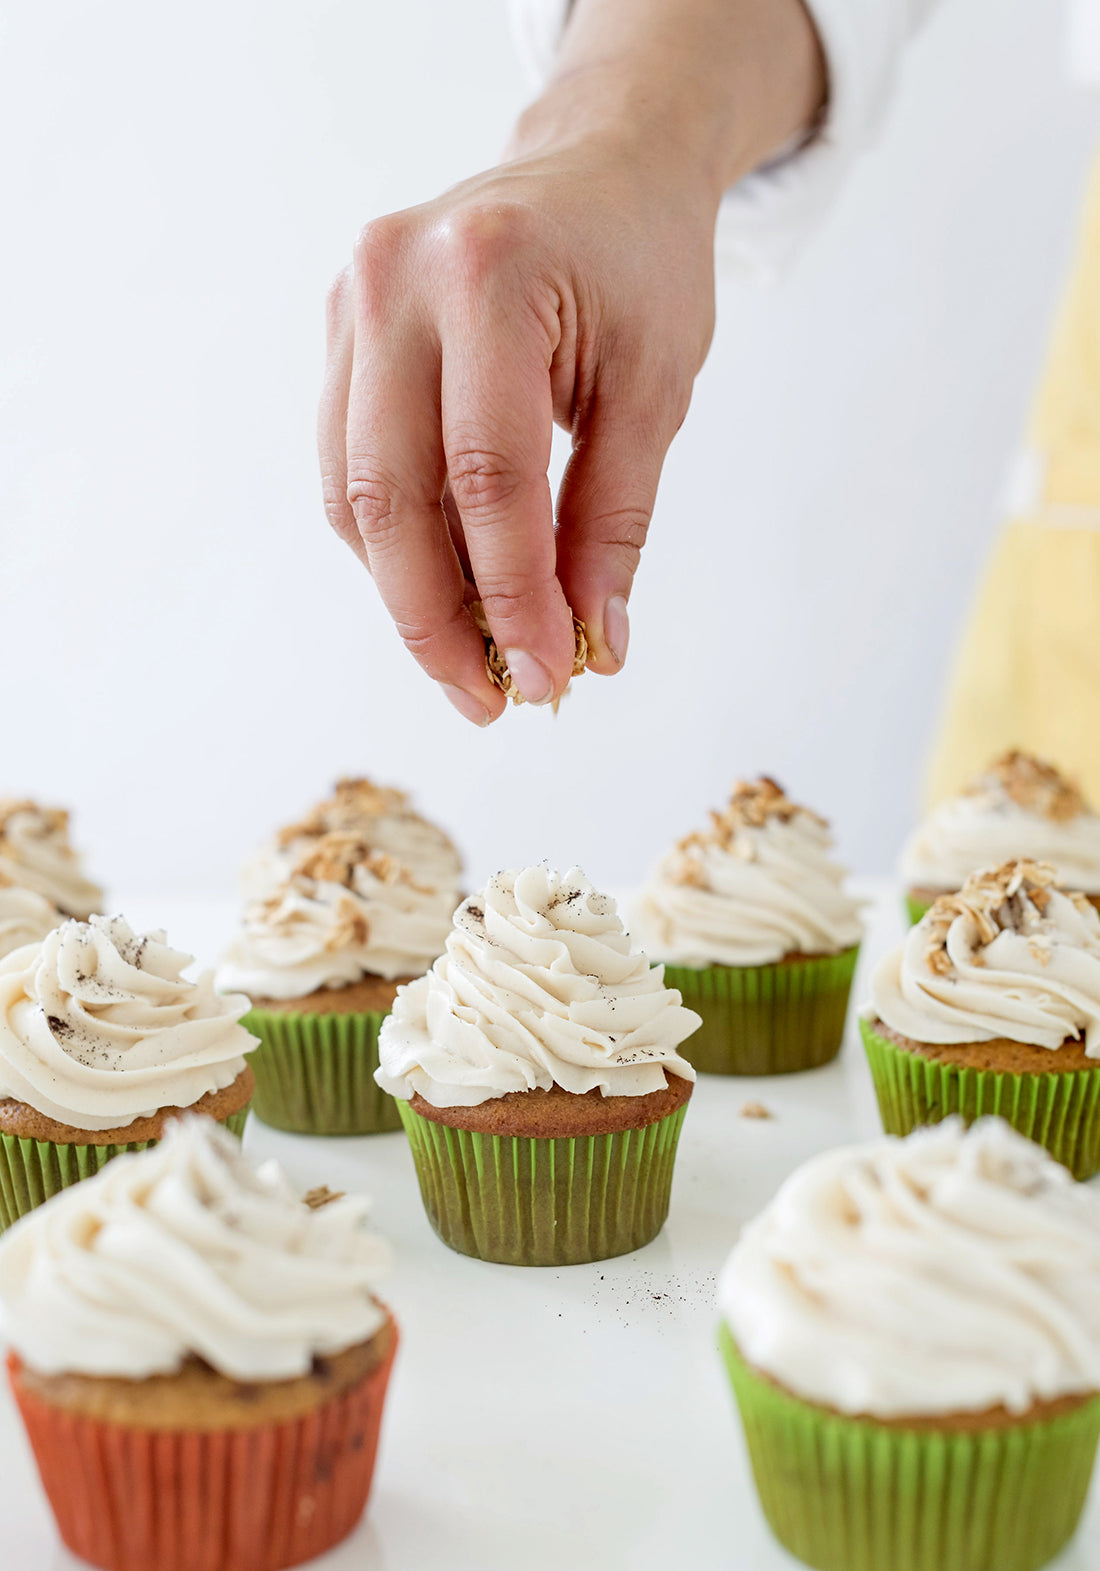 Image from the side of a hand sprinkling toppings on top of Miss Jones Baking Co Pumpkin Spice Latte (PSL) Cupcakes